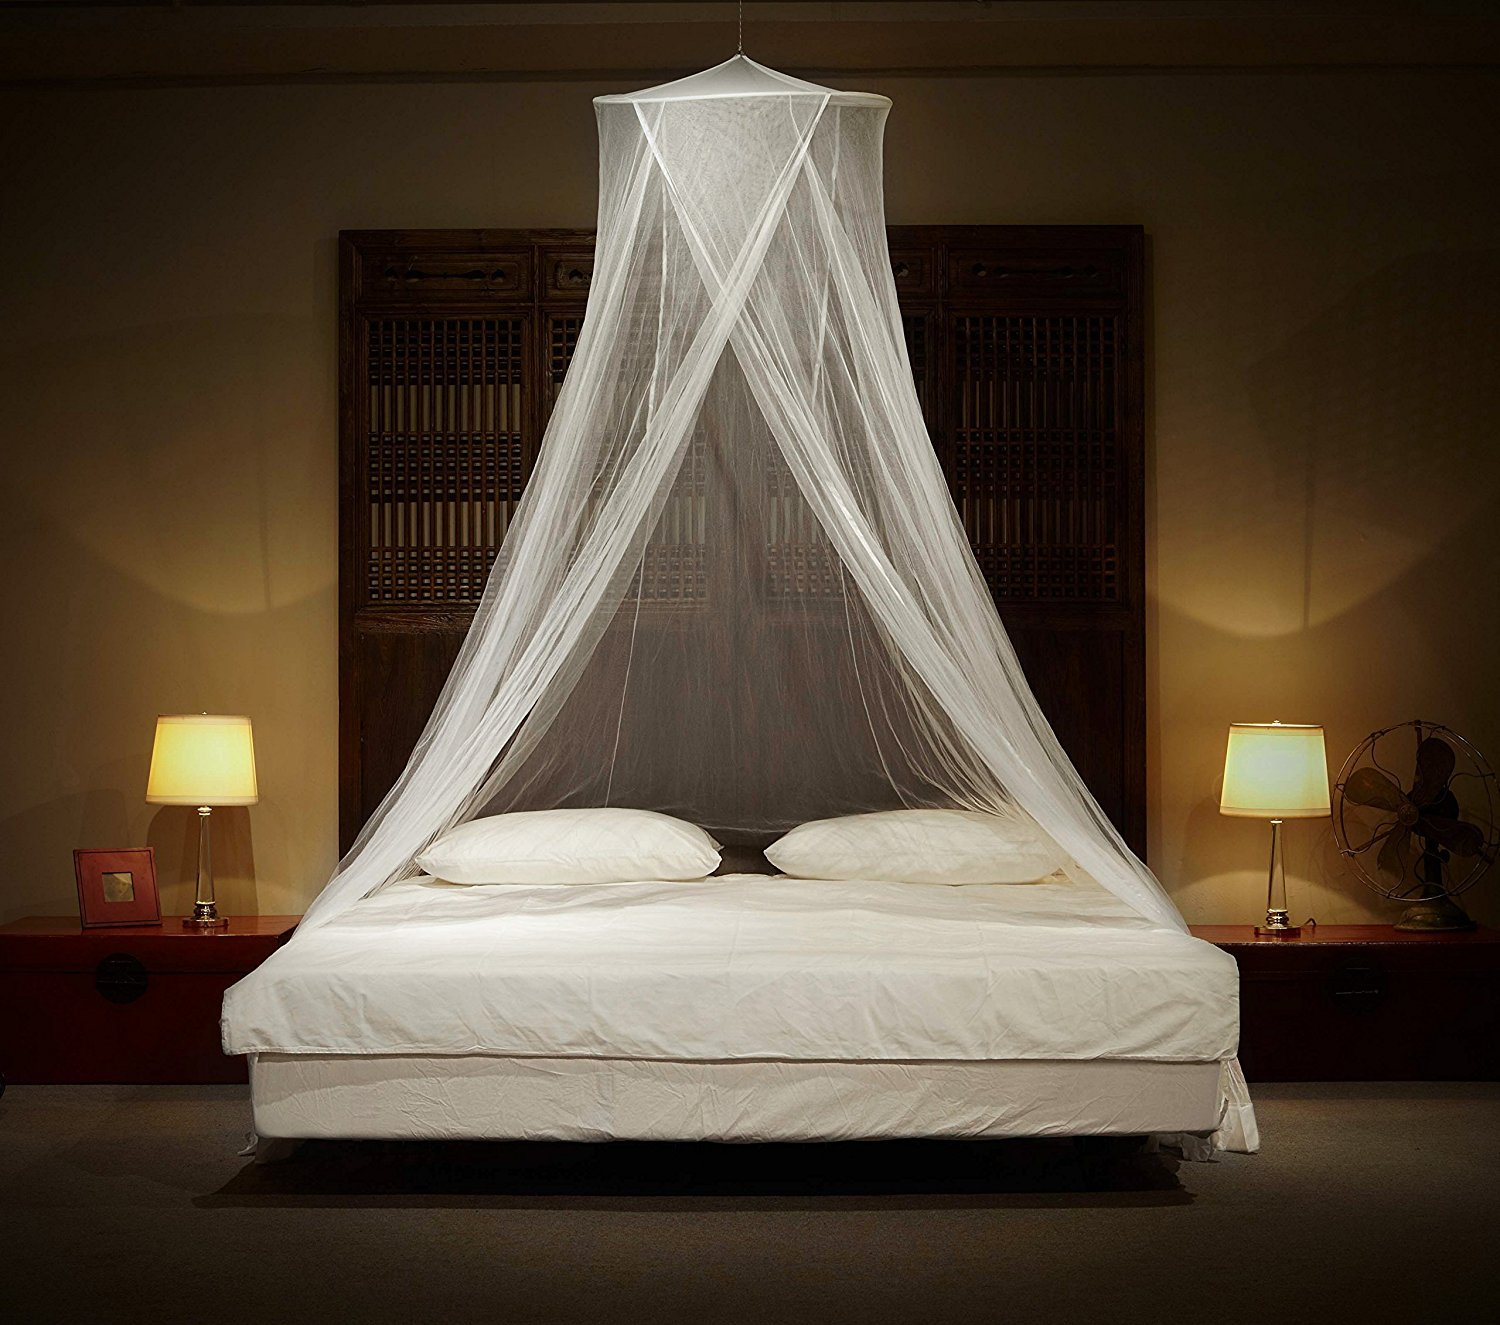 Kyerivs Mosquito Nets - King Size Premium Mosquito Net Canopy for Home or Travel, Includes Hanging Kit, Travel Bag, and No Harmful Chemicals. Fits All Beds Up To King Size.